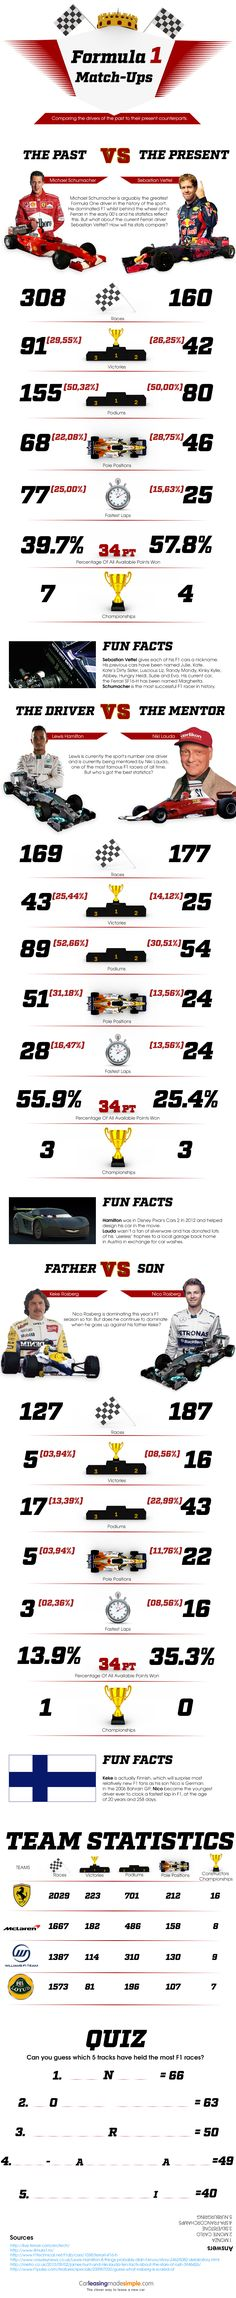 Formula One is famous for having some of the biggest rivalries in sport such as Senna and Prost, Hunt and Lauda and eve n right now with Hamilton and Rosberg. But what if we could take some of F1's greatest drivers and match them up with the best of today? The folks at Car Leasing Made Simple have done just that. Below we see the greatest of all time, Michael Schumacher go head-to-head with Ferrari new boy, Sebastian Vettel. They've also pitted the apprentice against the mentor with Lewis…